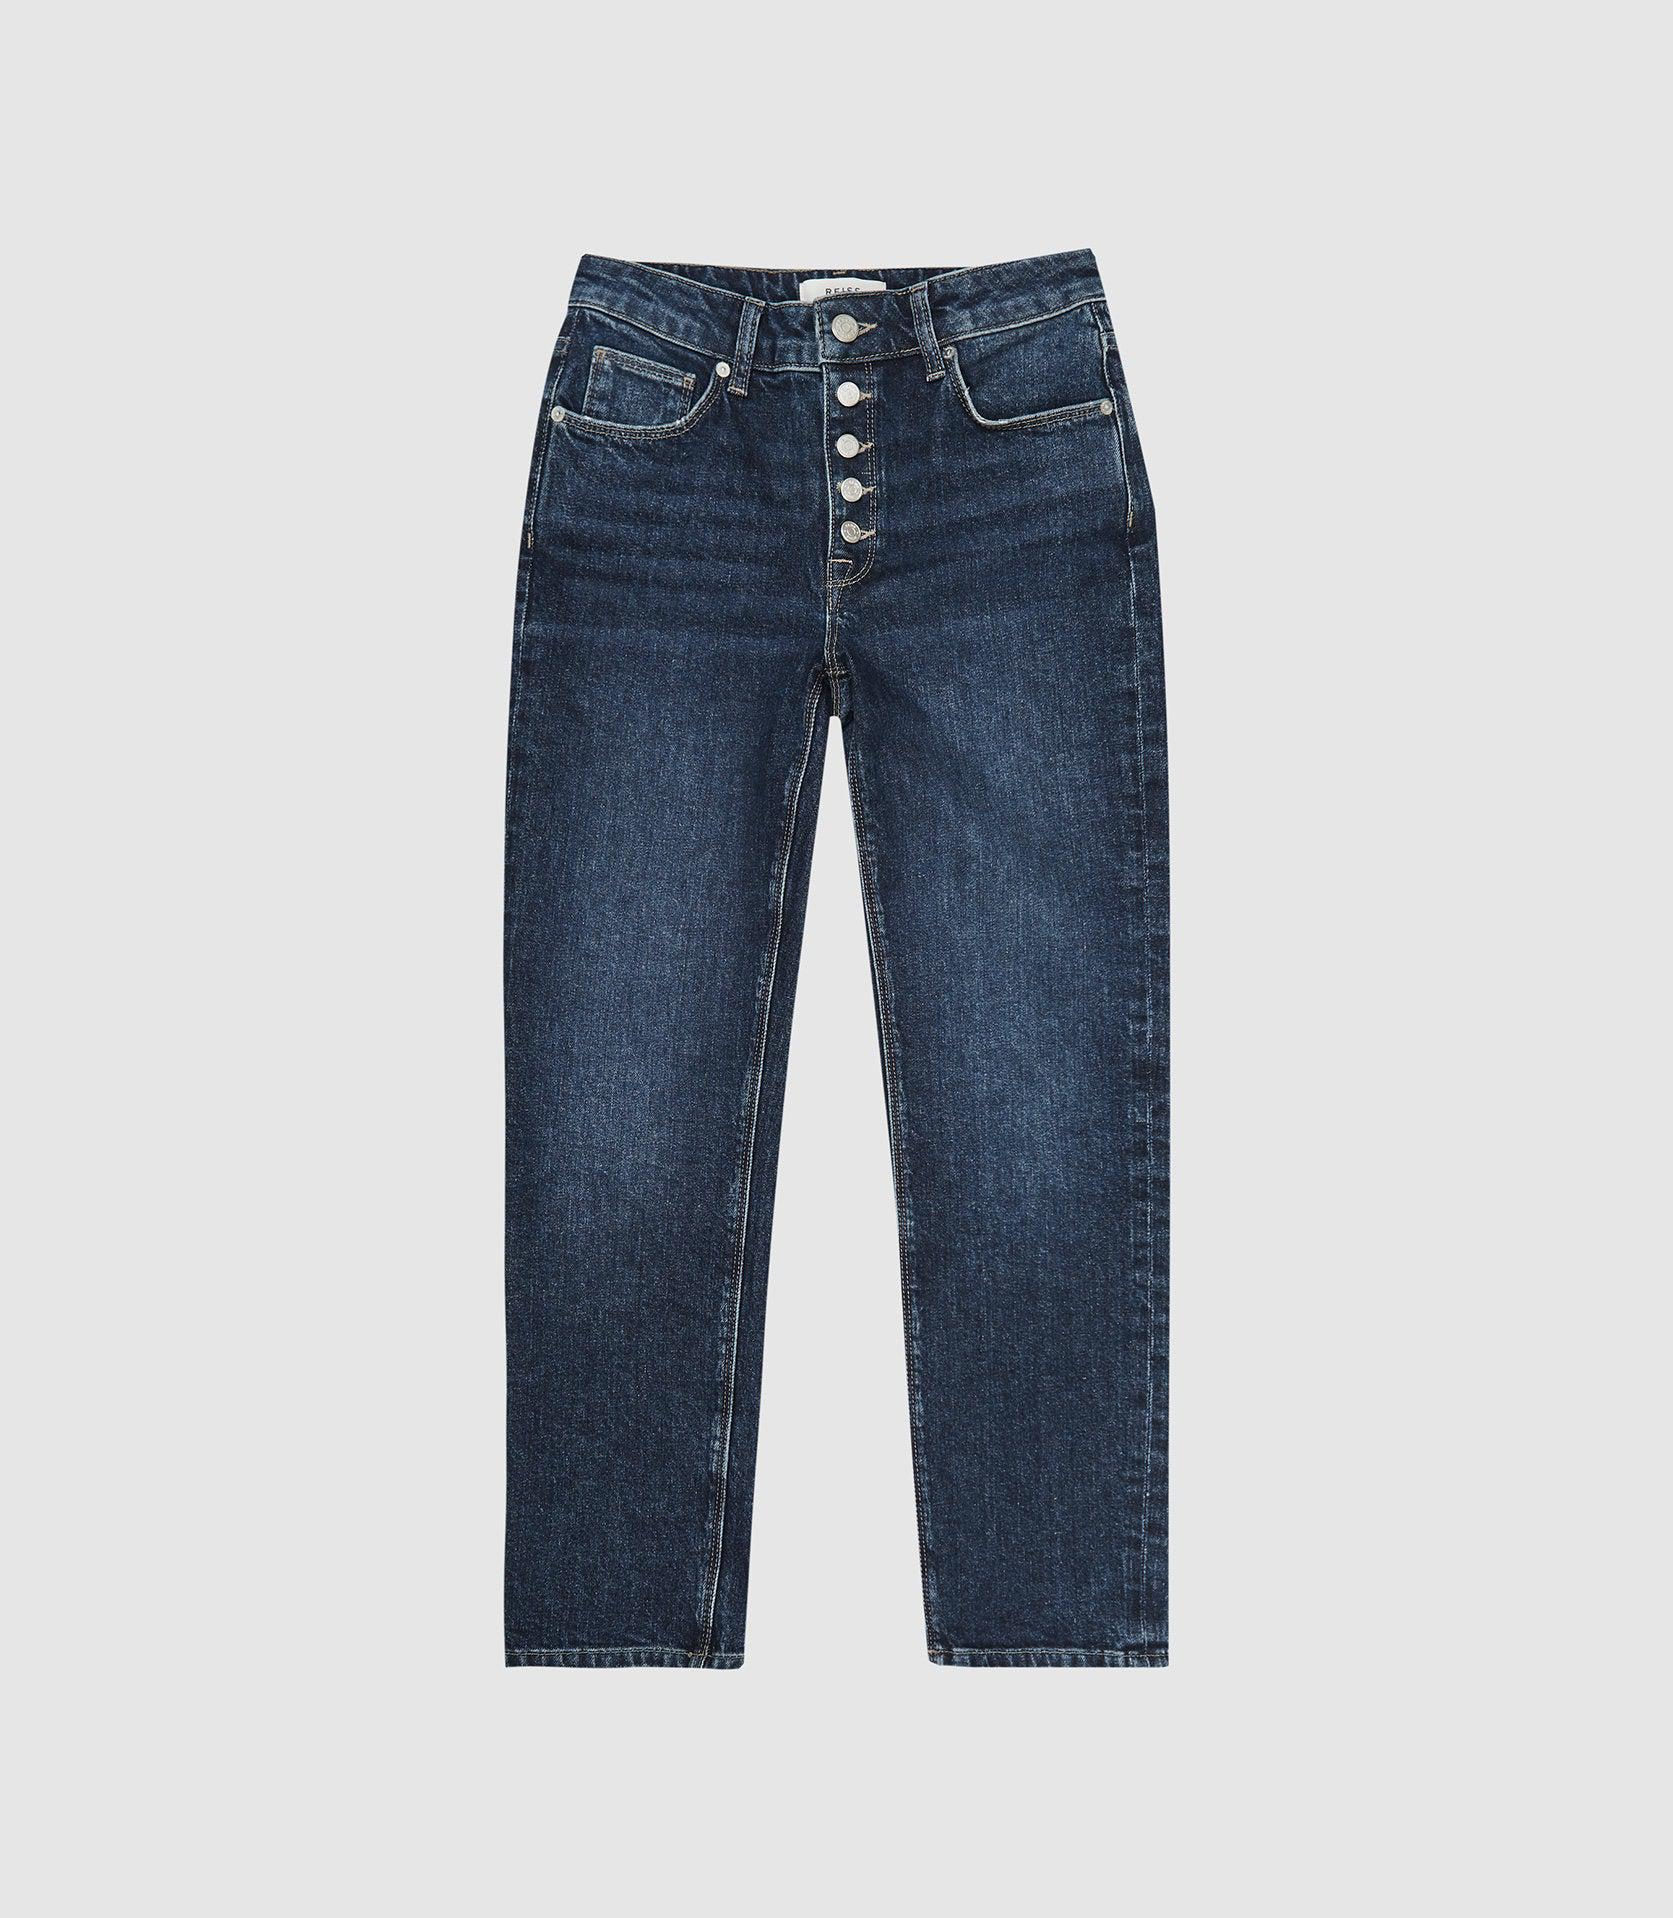 BAILEY - MID RISE SLIM CROPPED JEANS 3